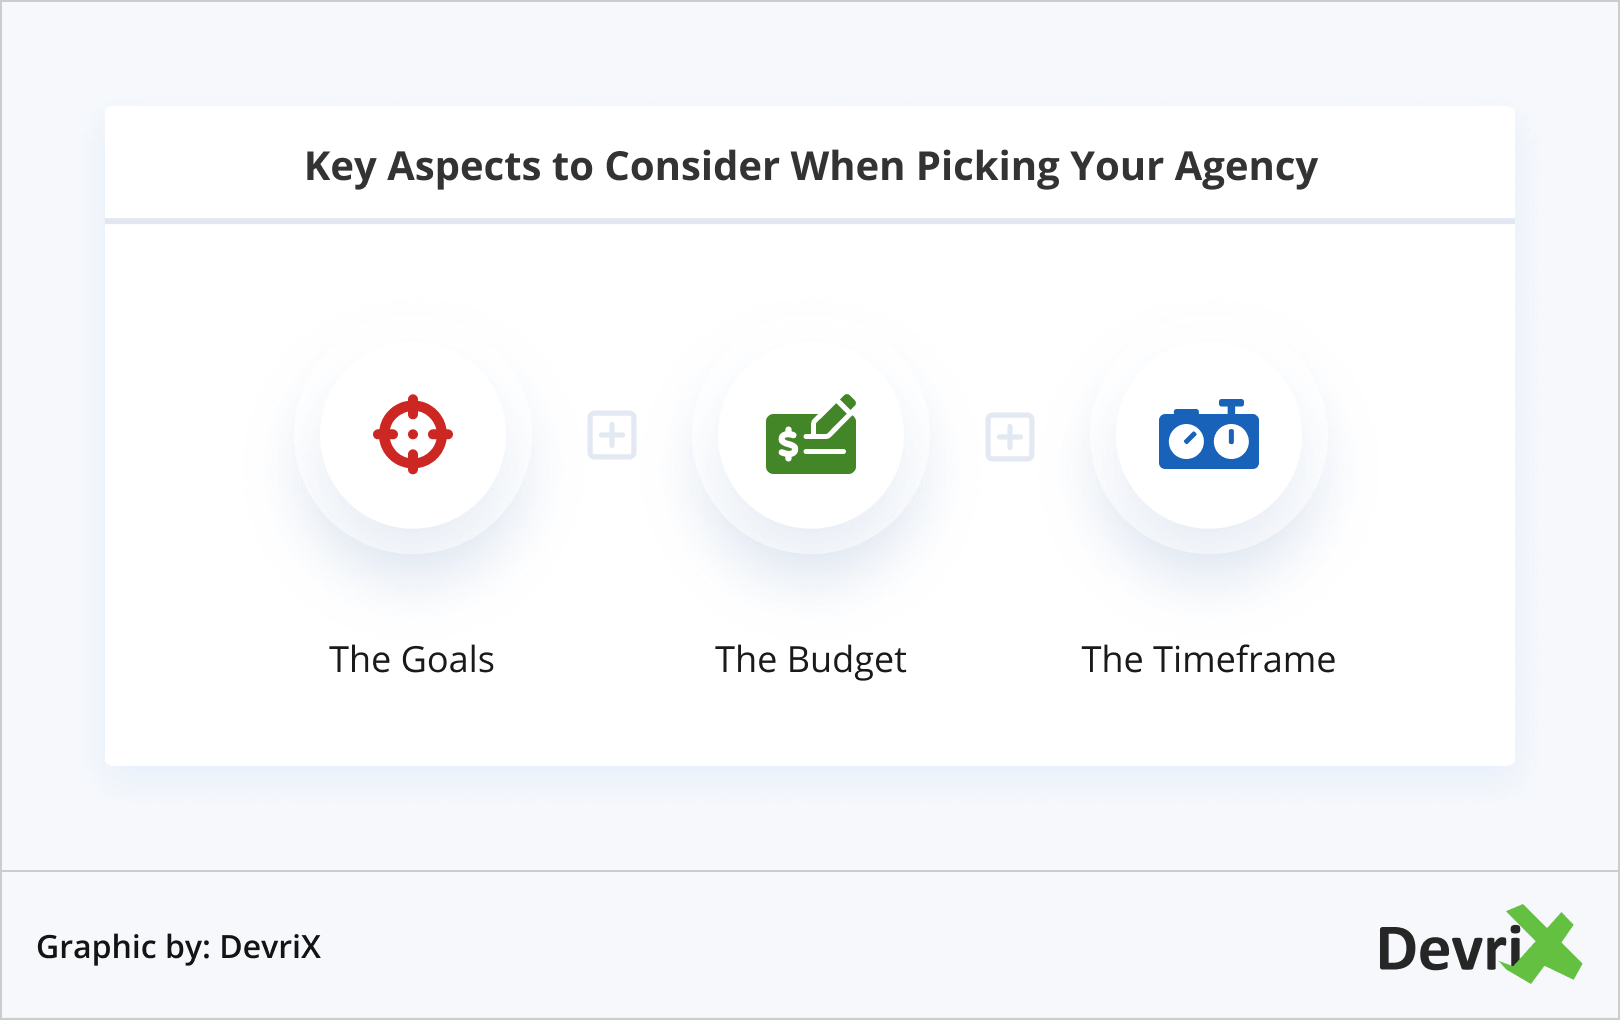 Key Aspects to Consider When Picking Your Agency